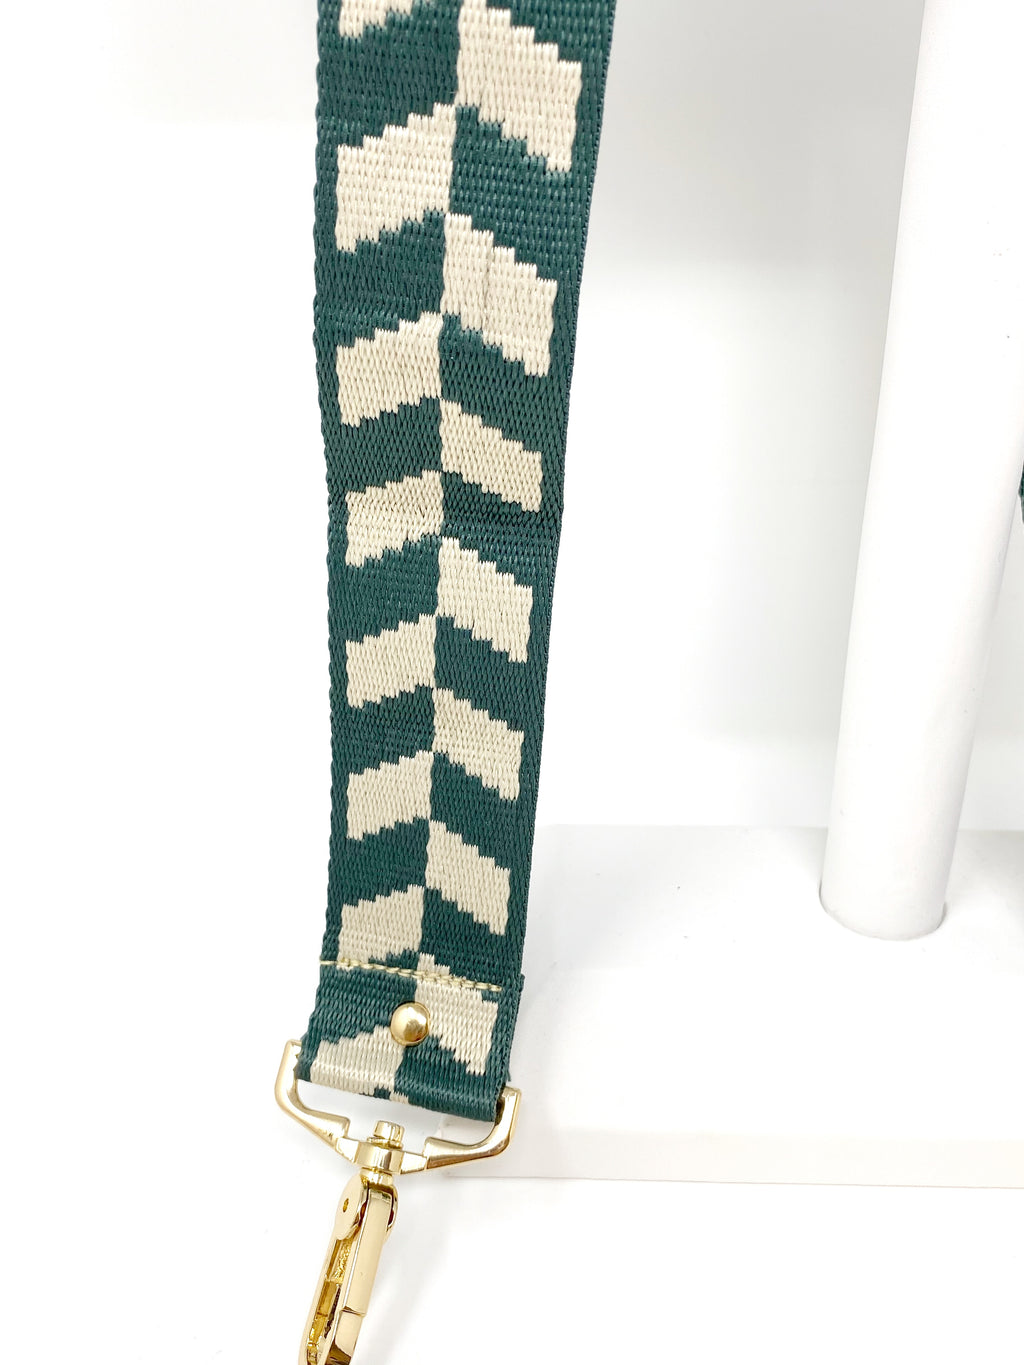 Feather Strap in Teal